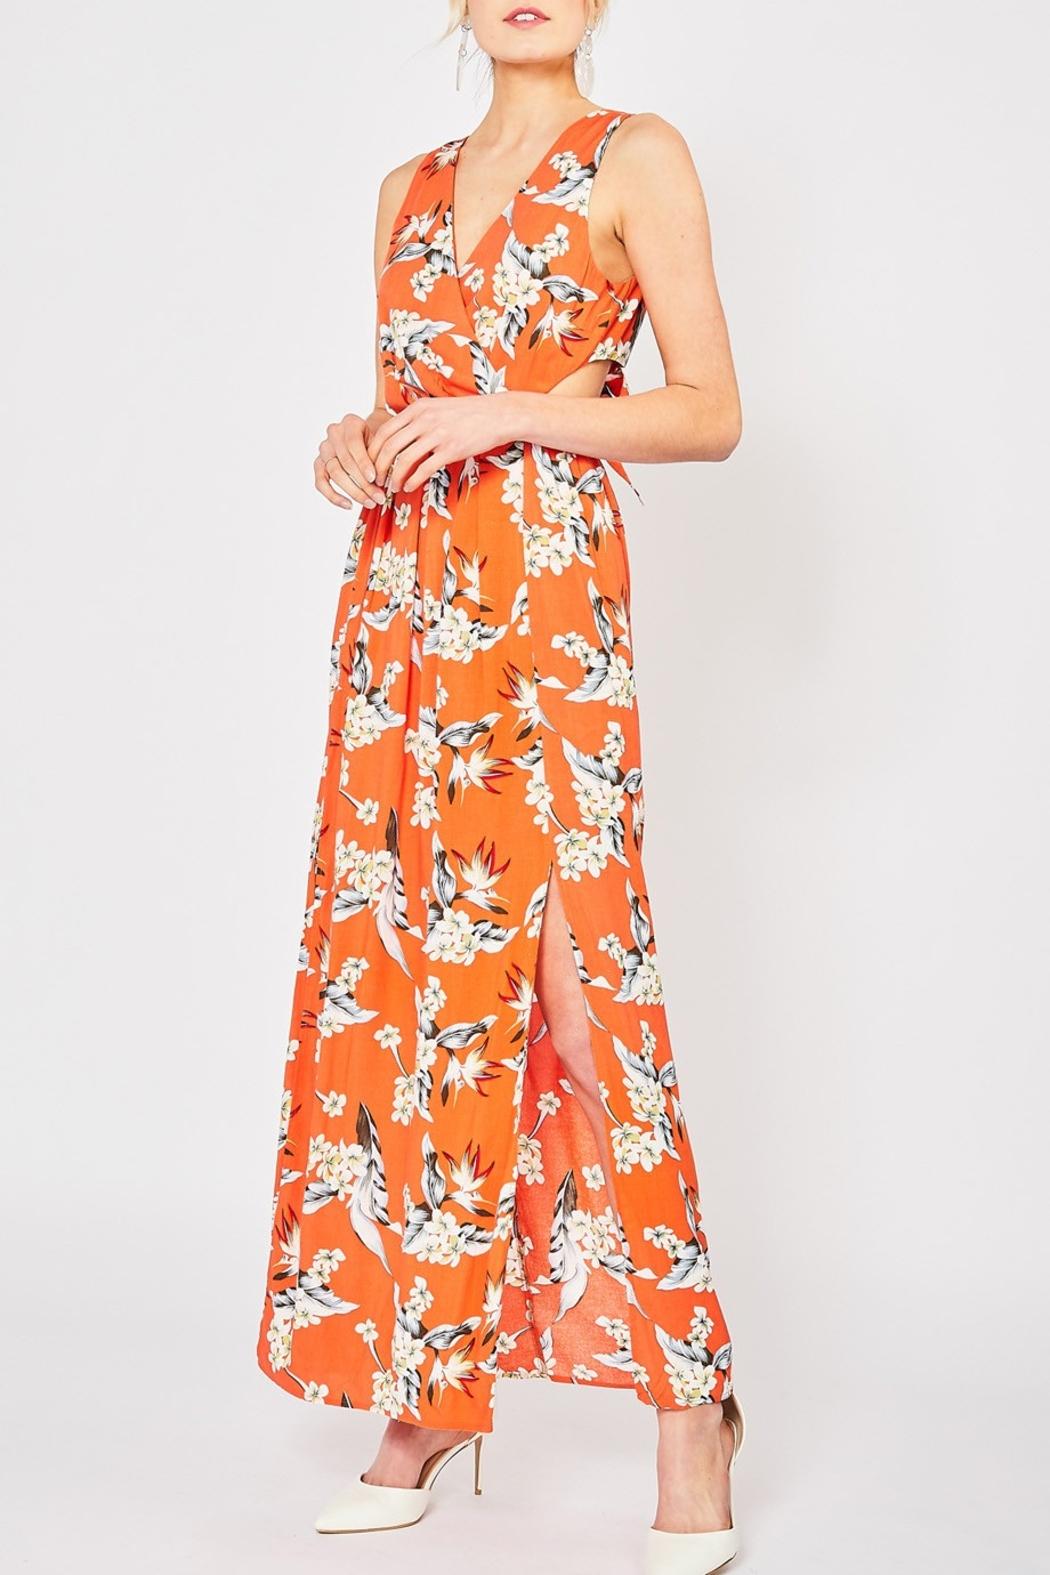 663aeb9085 Entro Live For It Maxi Dress from Louisiana by EXIT 16 - Slidell ...